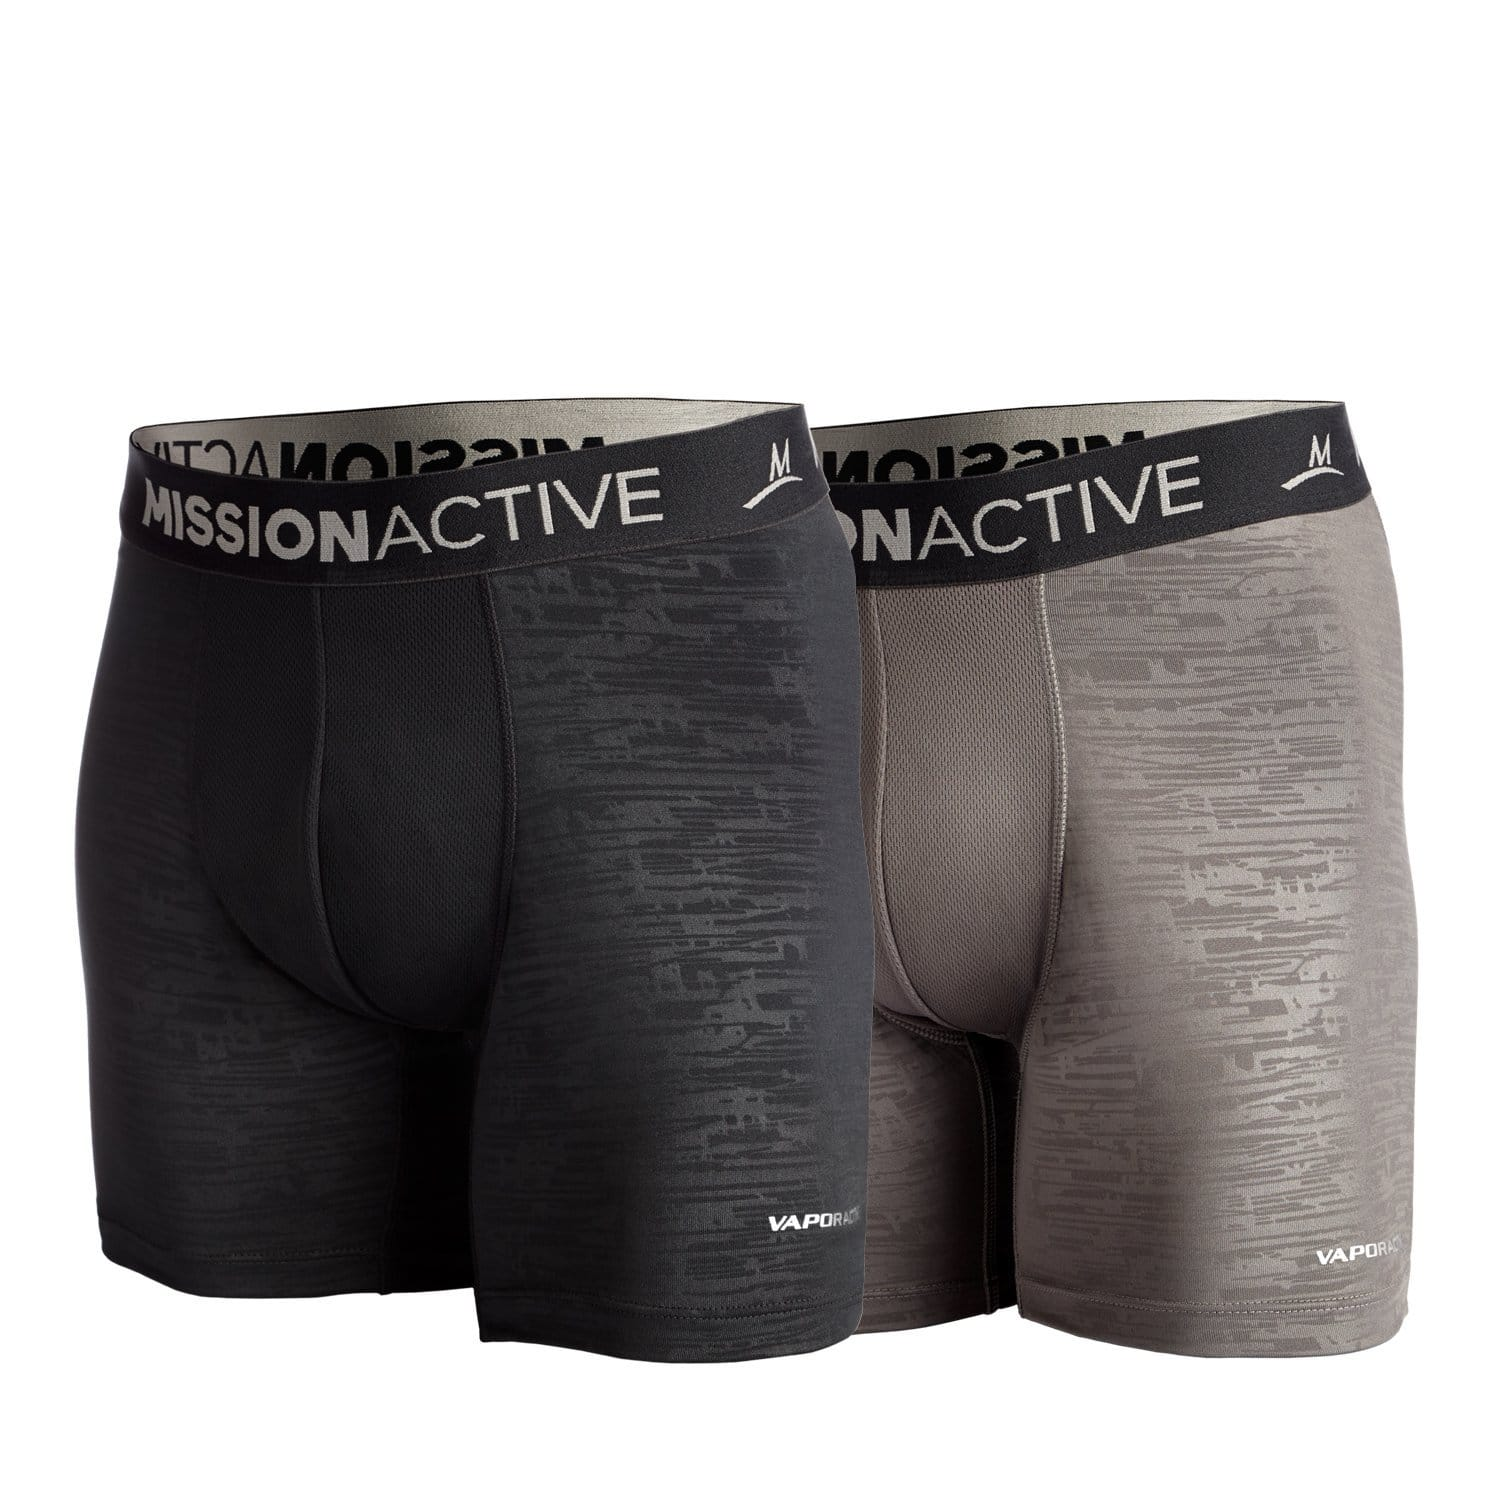 Add-on Item: 2-Pack Mission Men's Boxer Briefs (Various Colors/Sizes) from $5.28 + Free S&H on $25+